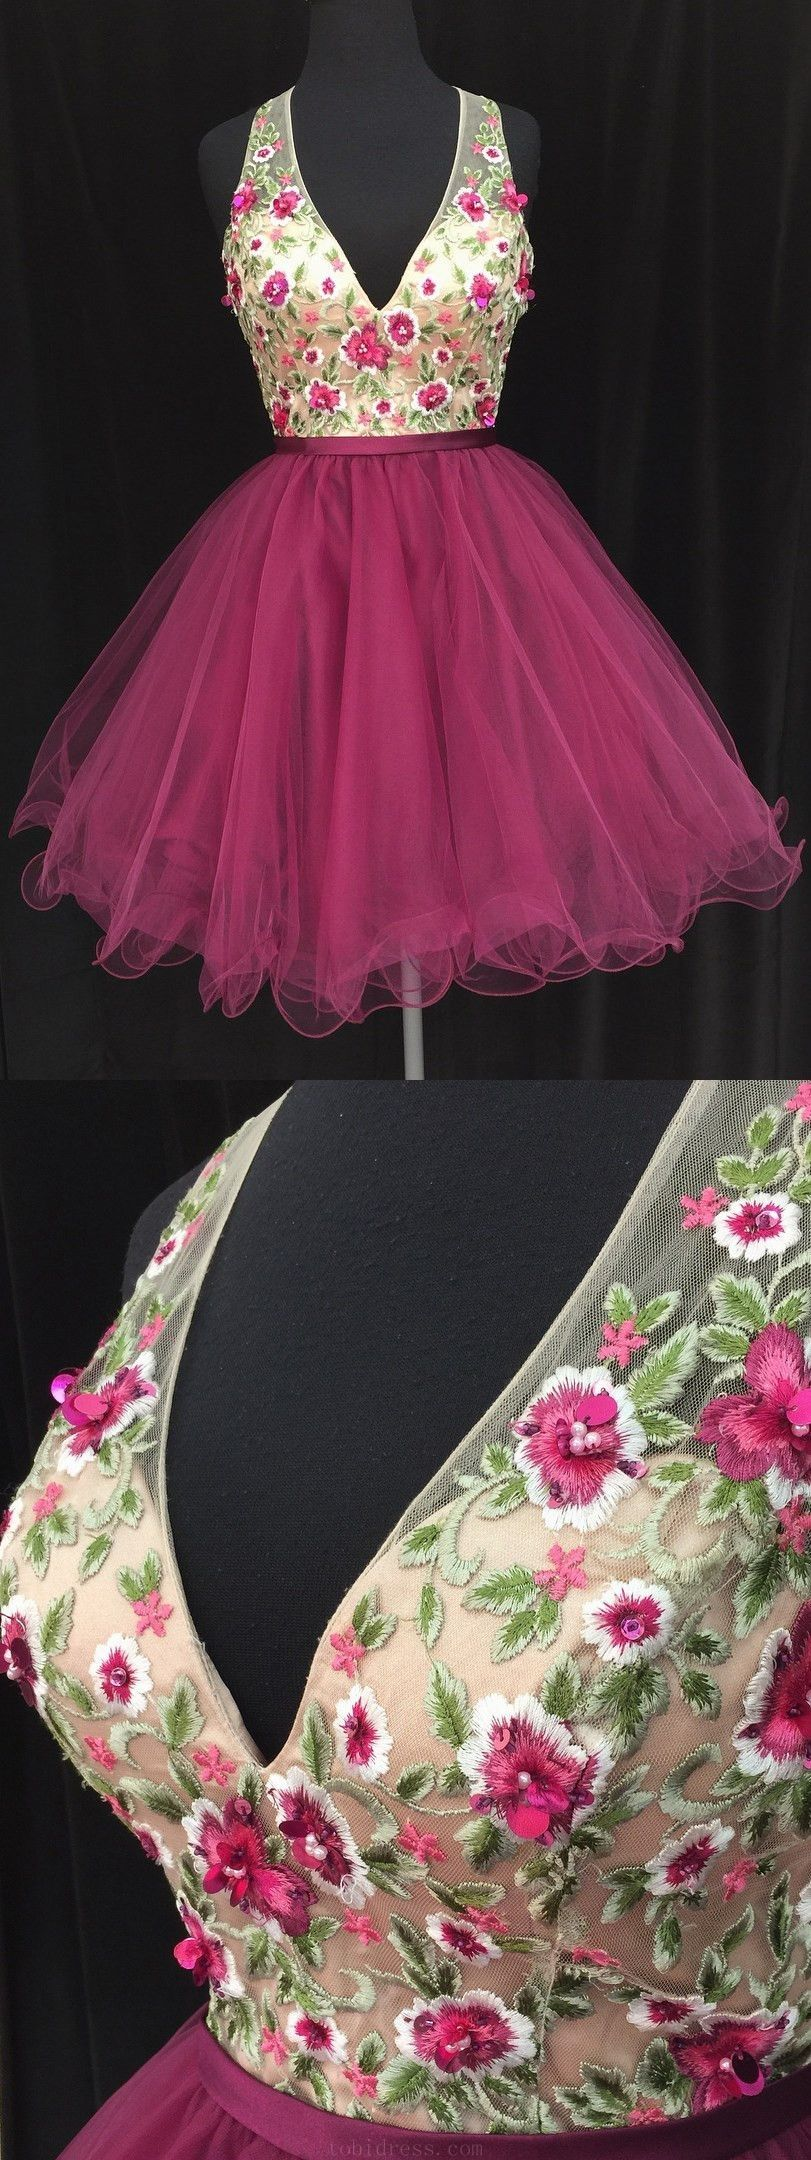 Delightful v neck short embroidery floral fuchsia homecoming dress